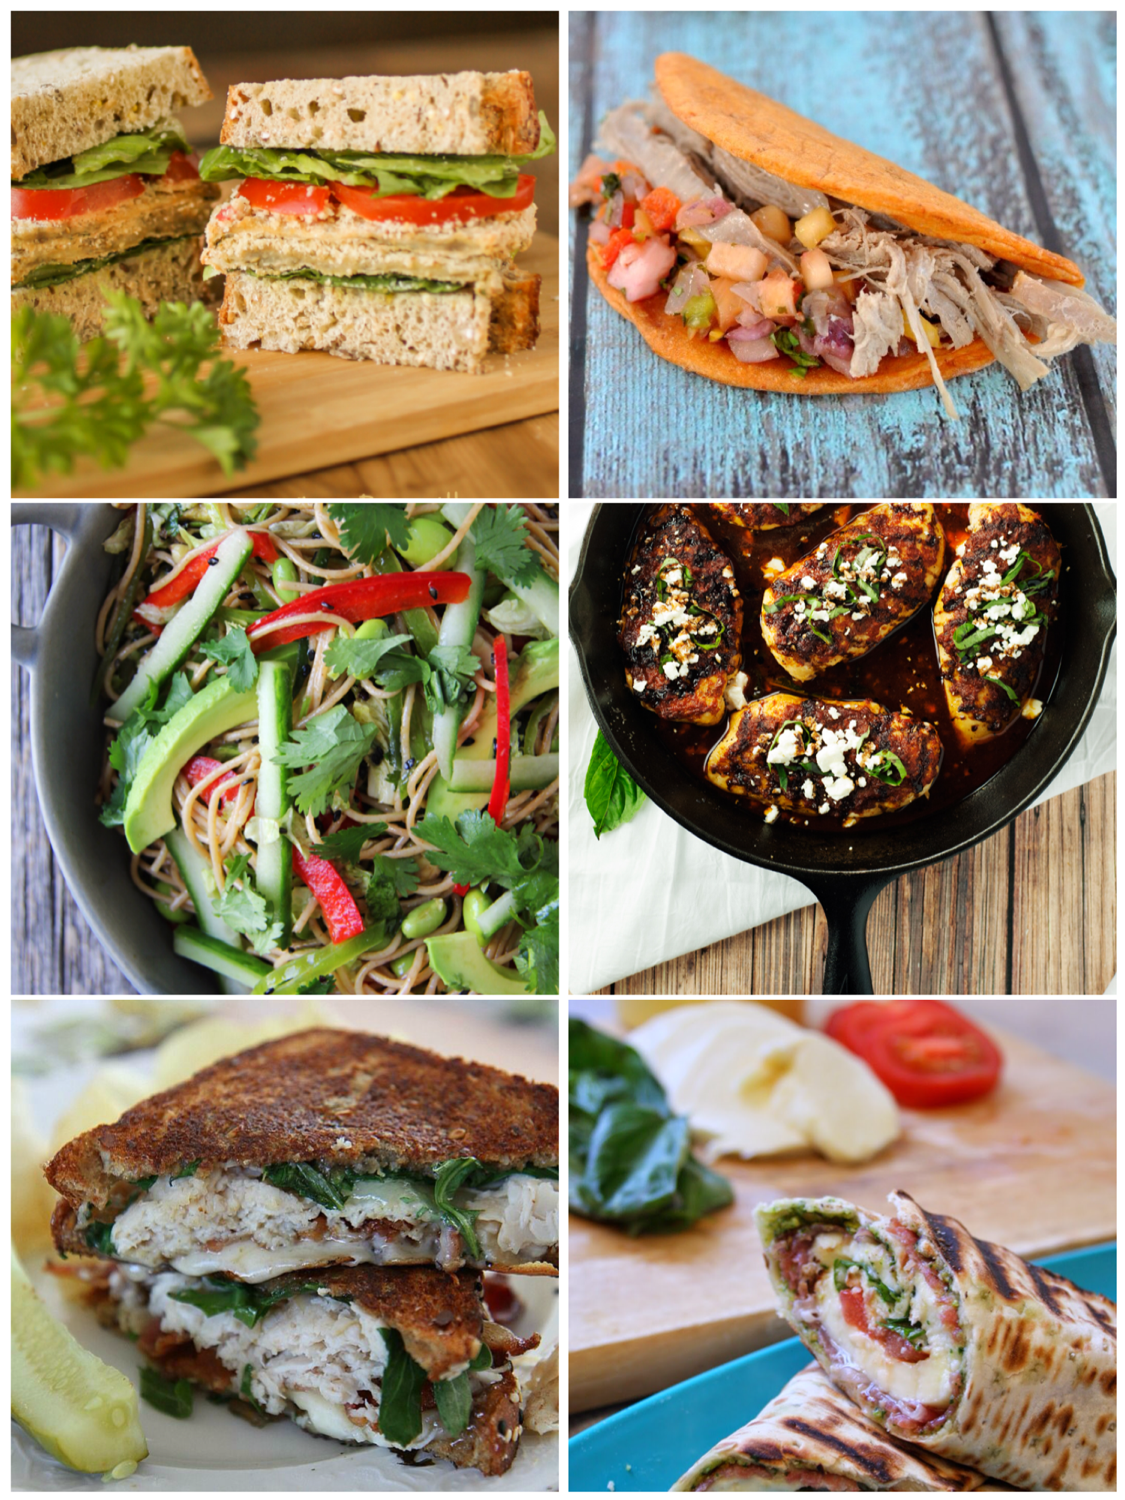 6 Sensational Lunch Ideas from #tastytuesdays at anyonita-nibbles.co.uk